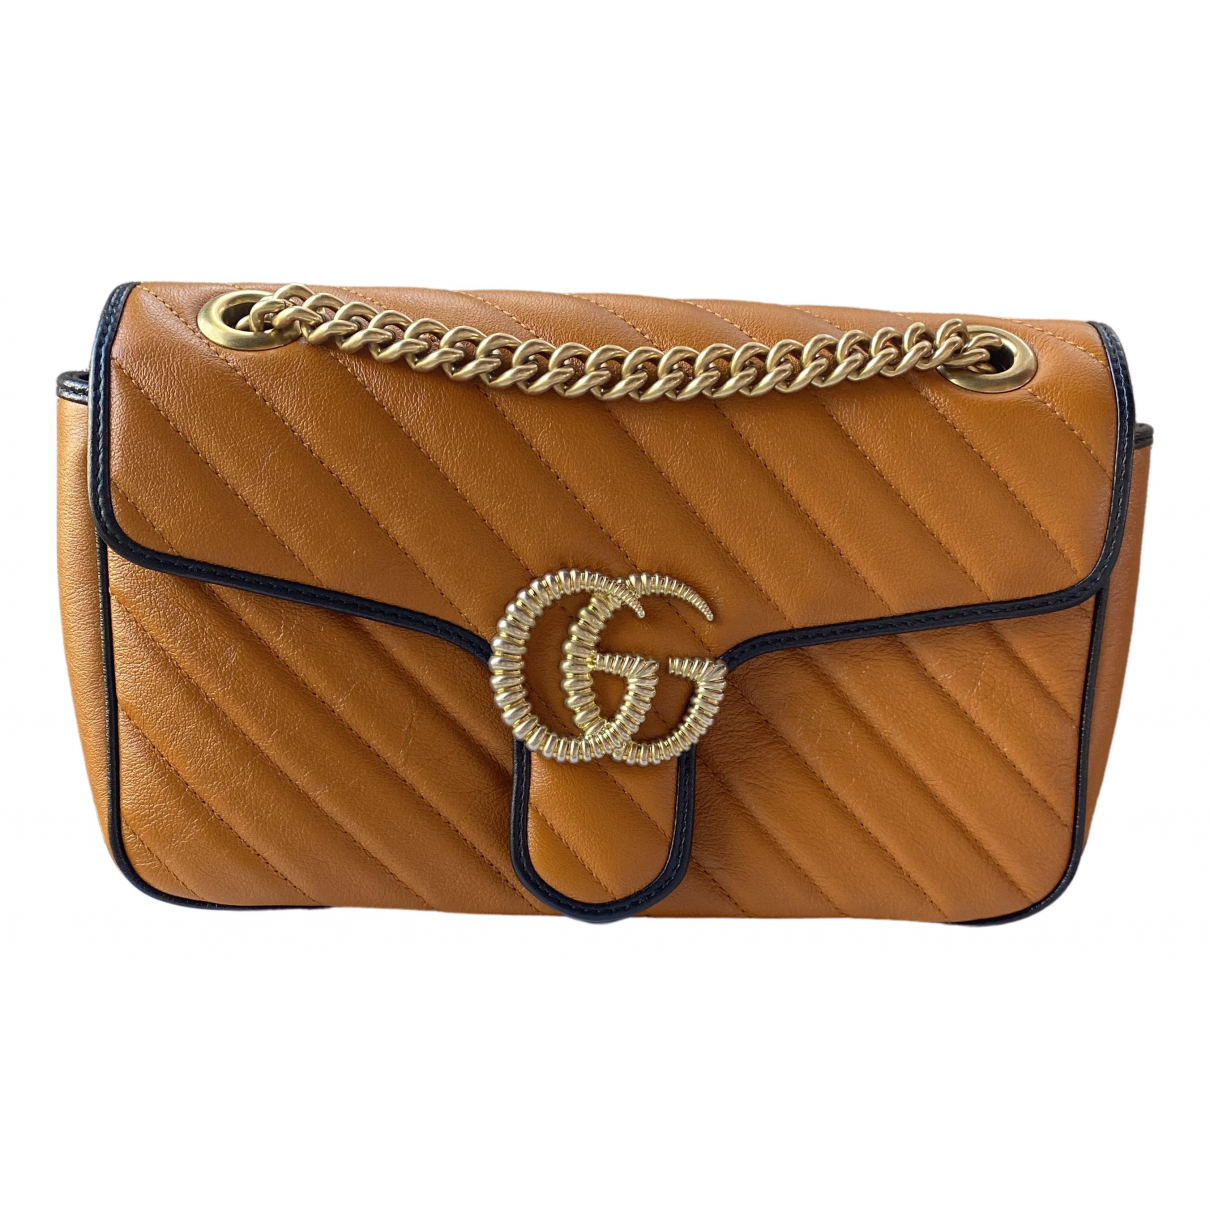 Gucci Marmont Camel Leather handbag for Women \N